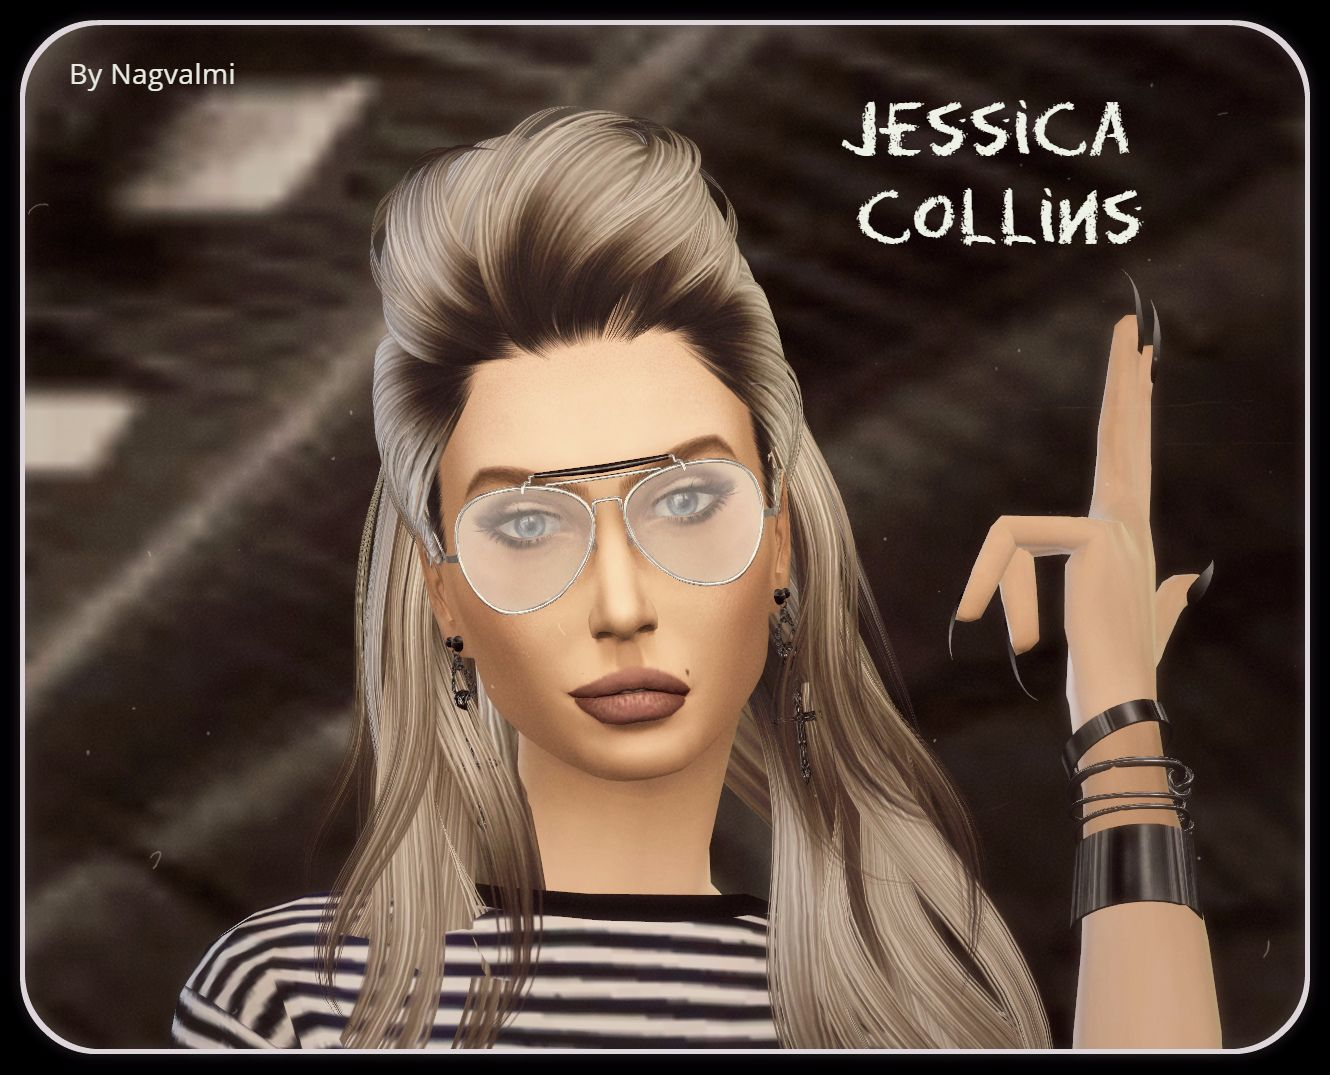 Jessica Collins by Nagvalmi